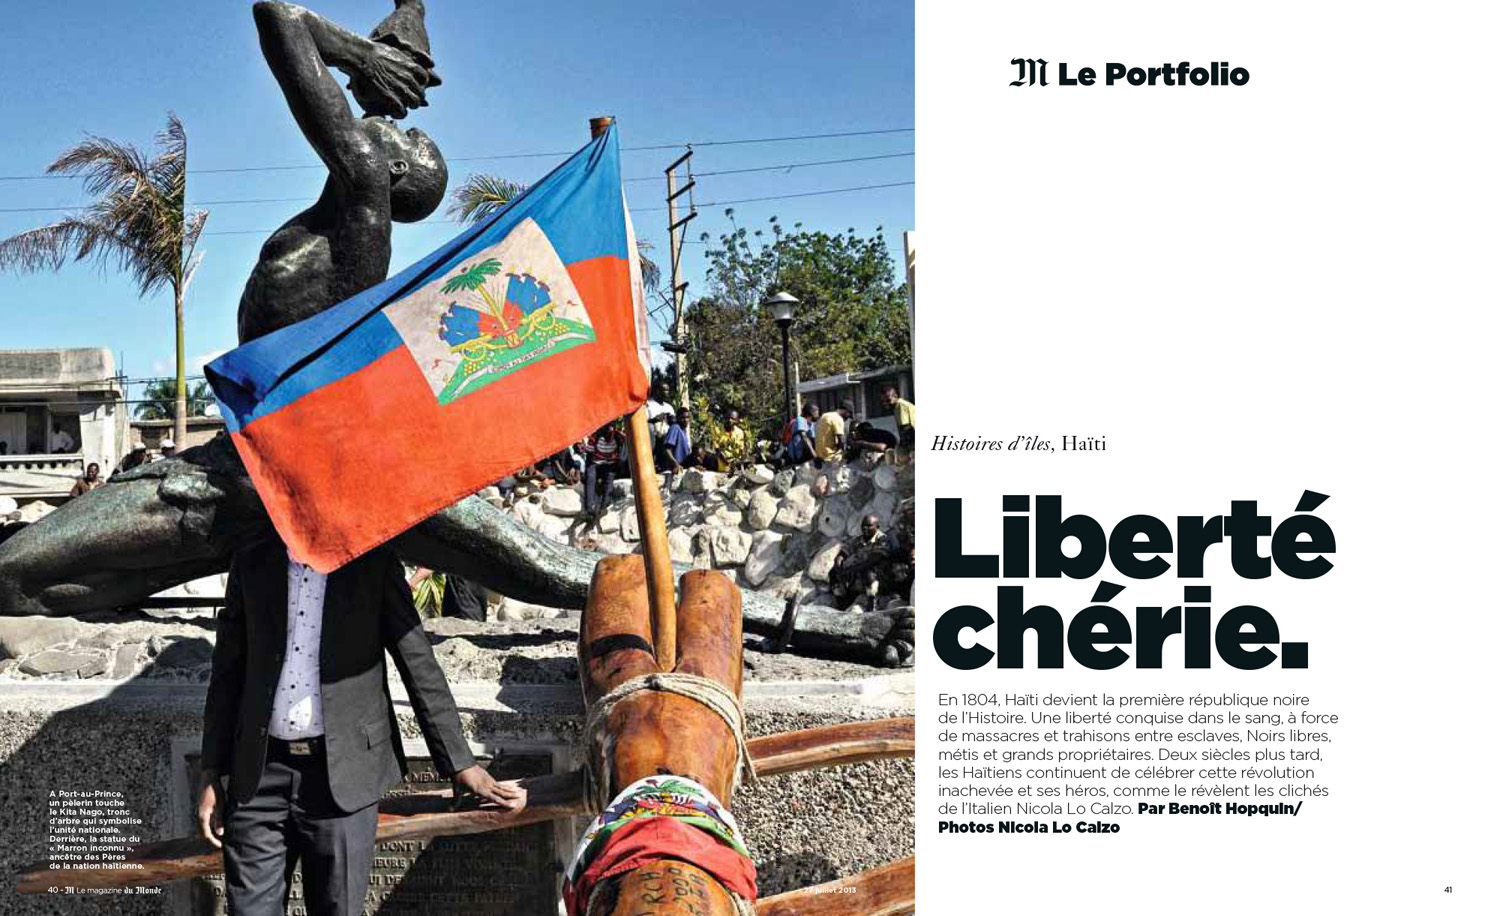 Ayiti published in Le Monde M